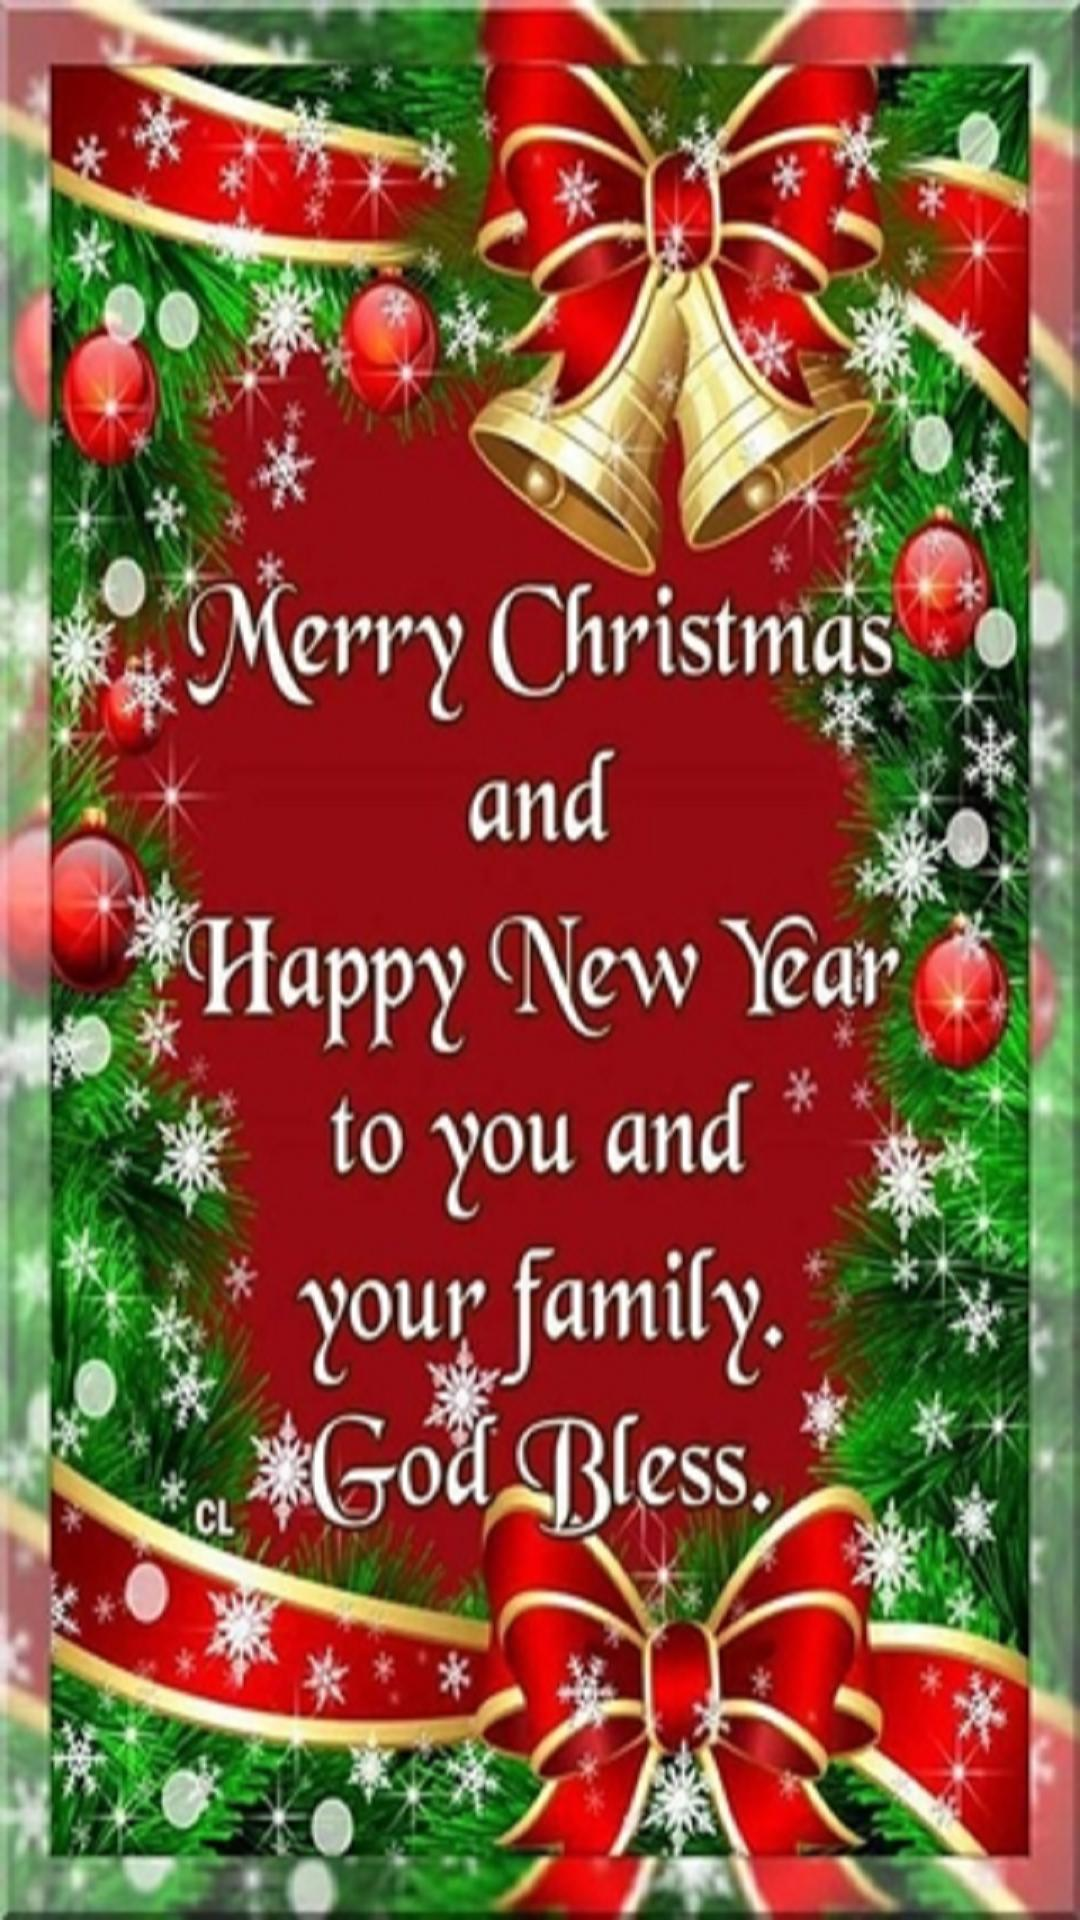 merry christmas and new year wishes for android apk download apkpure com